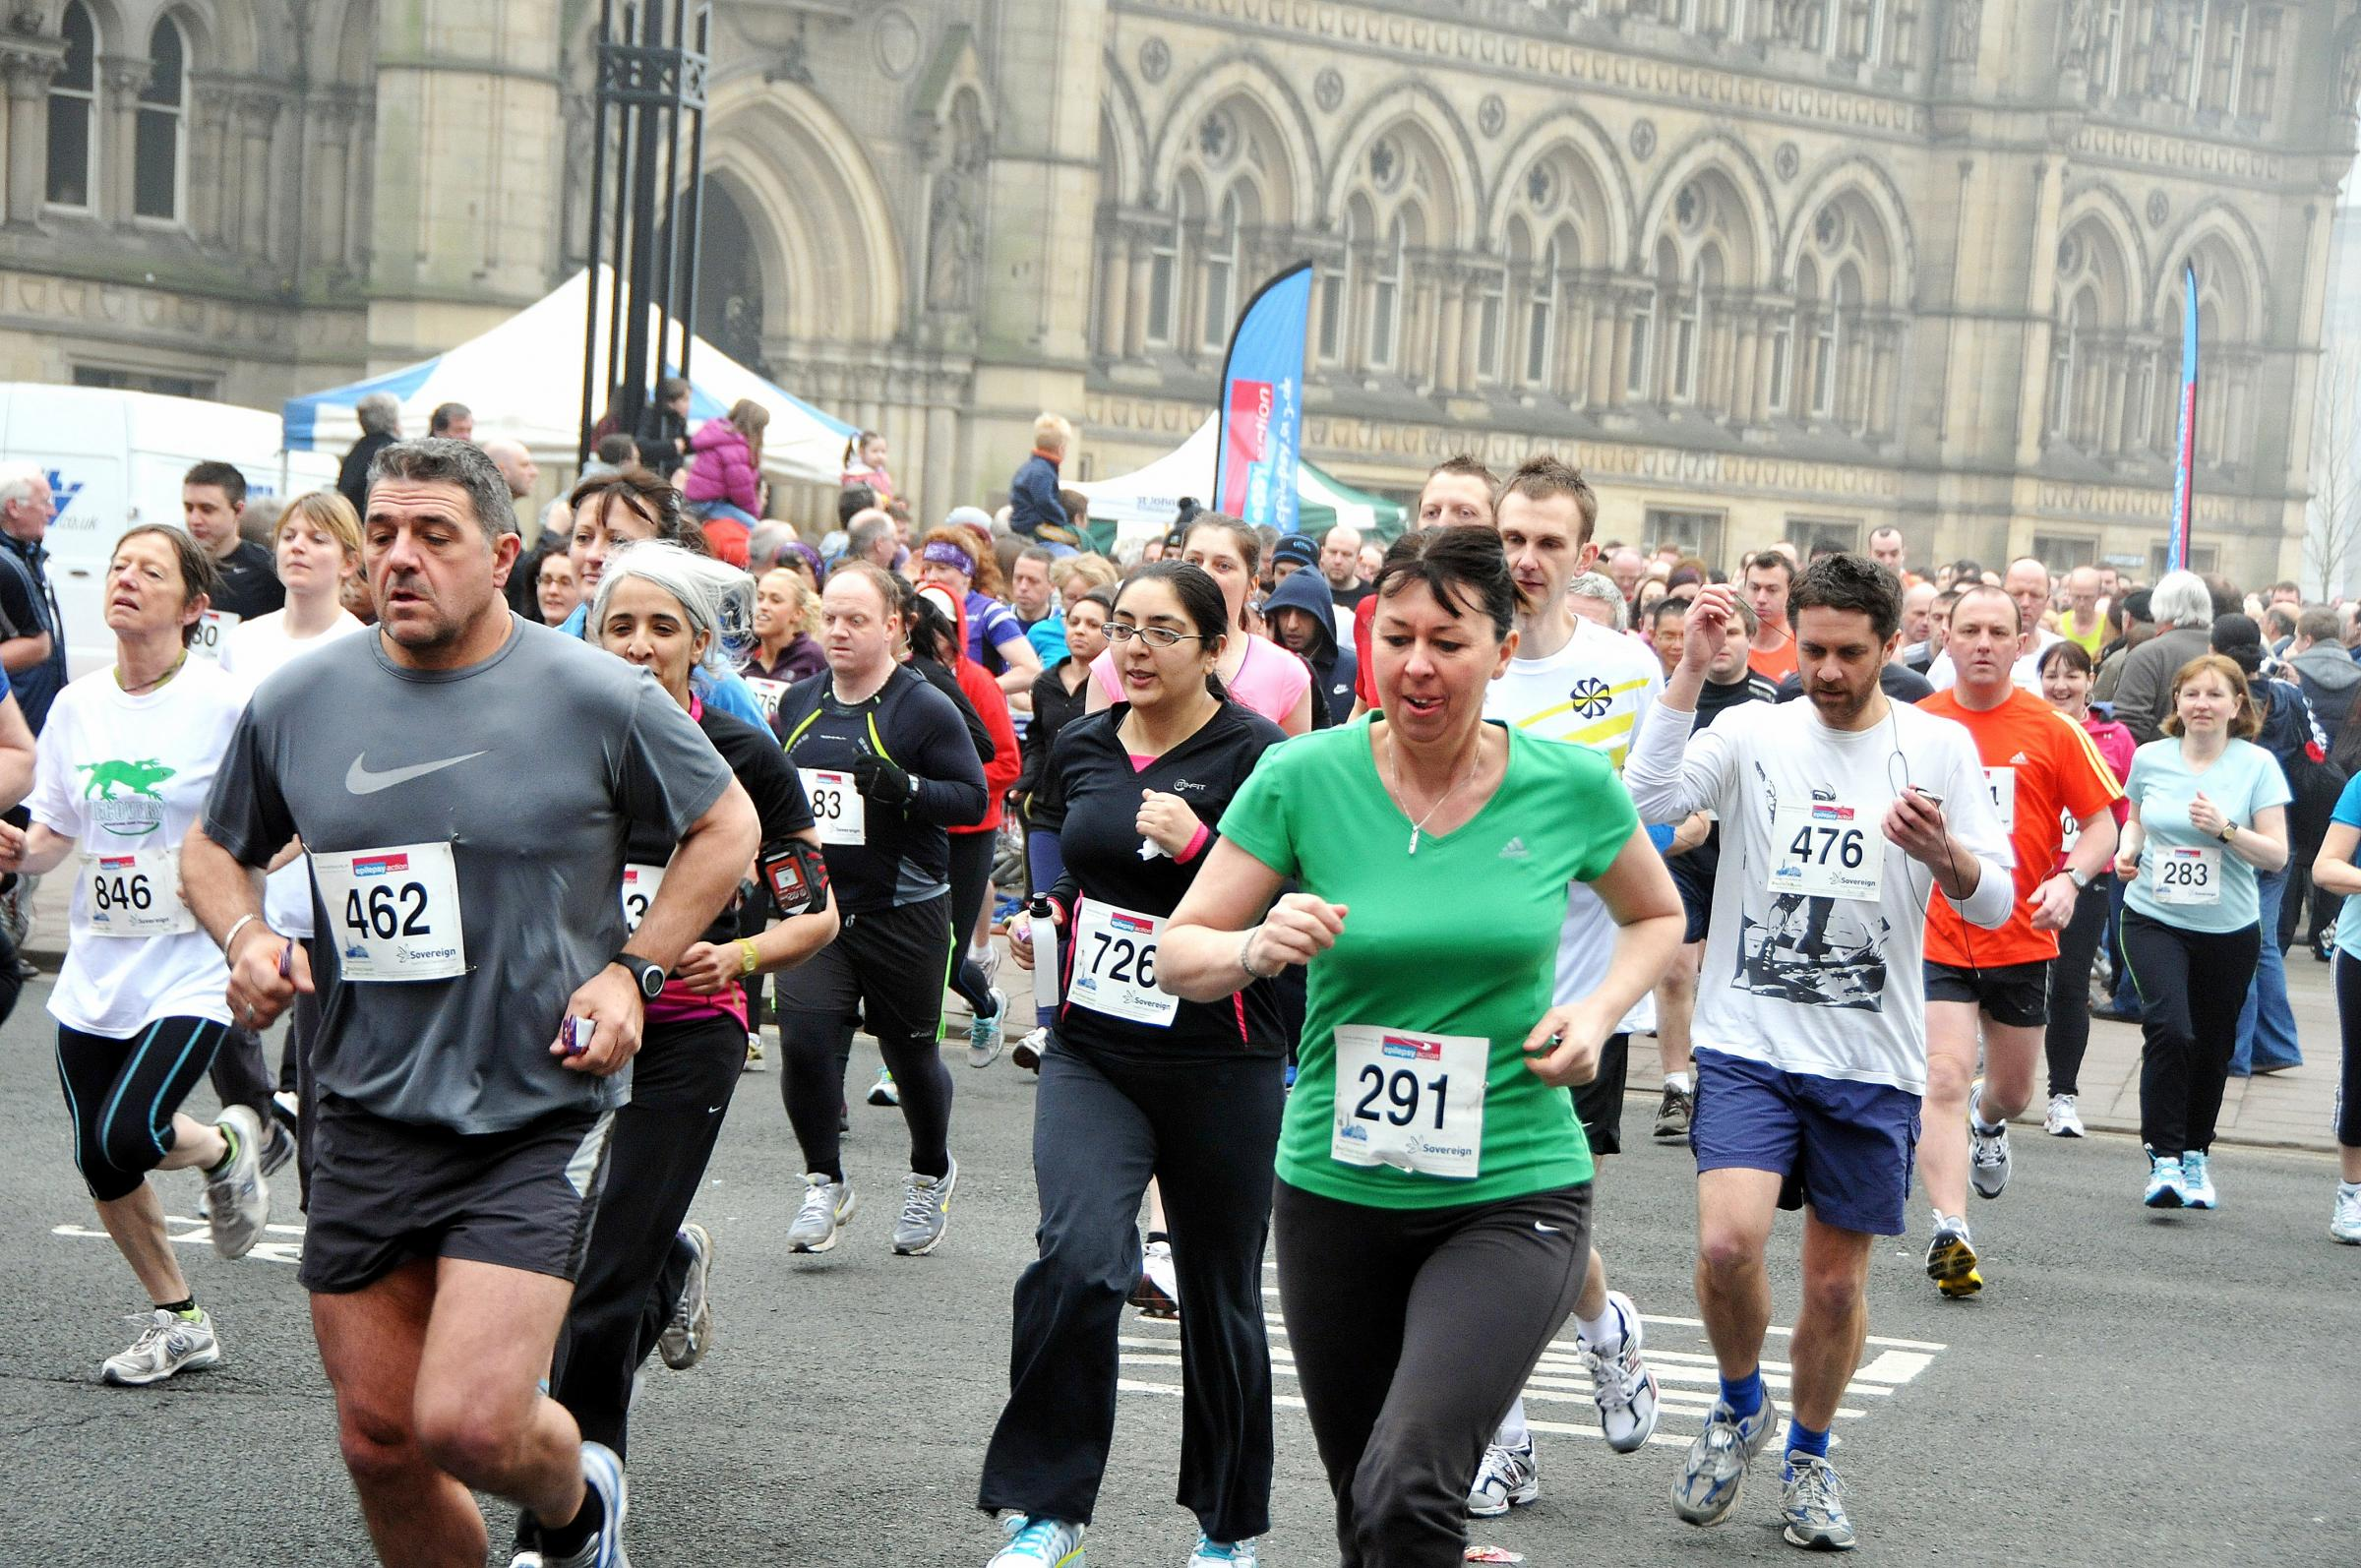 Runners taking part in a previous Epilepsy Action 10k